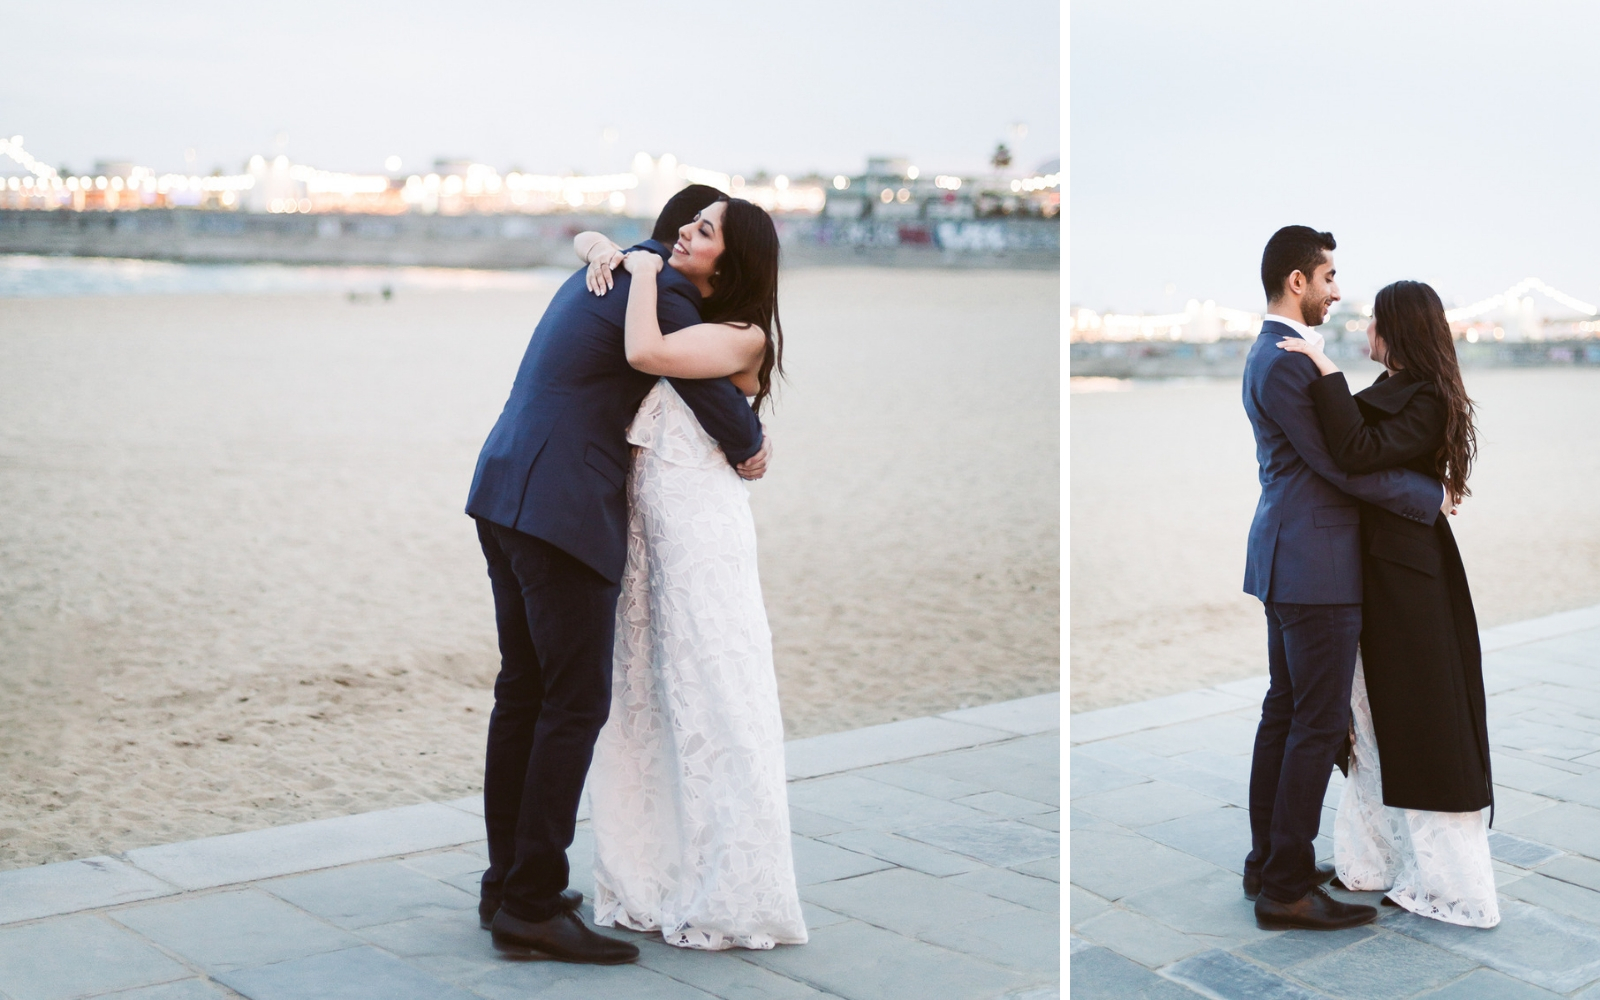 Engagement photo session at the beach in Barcelona